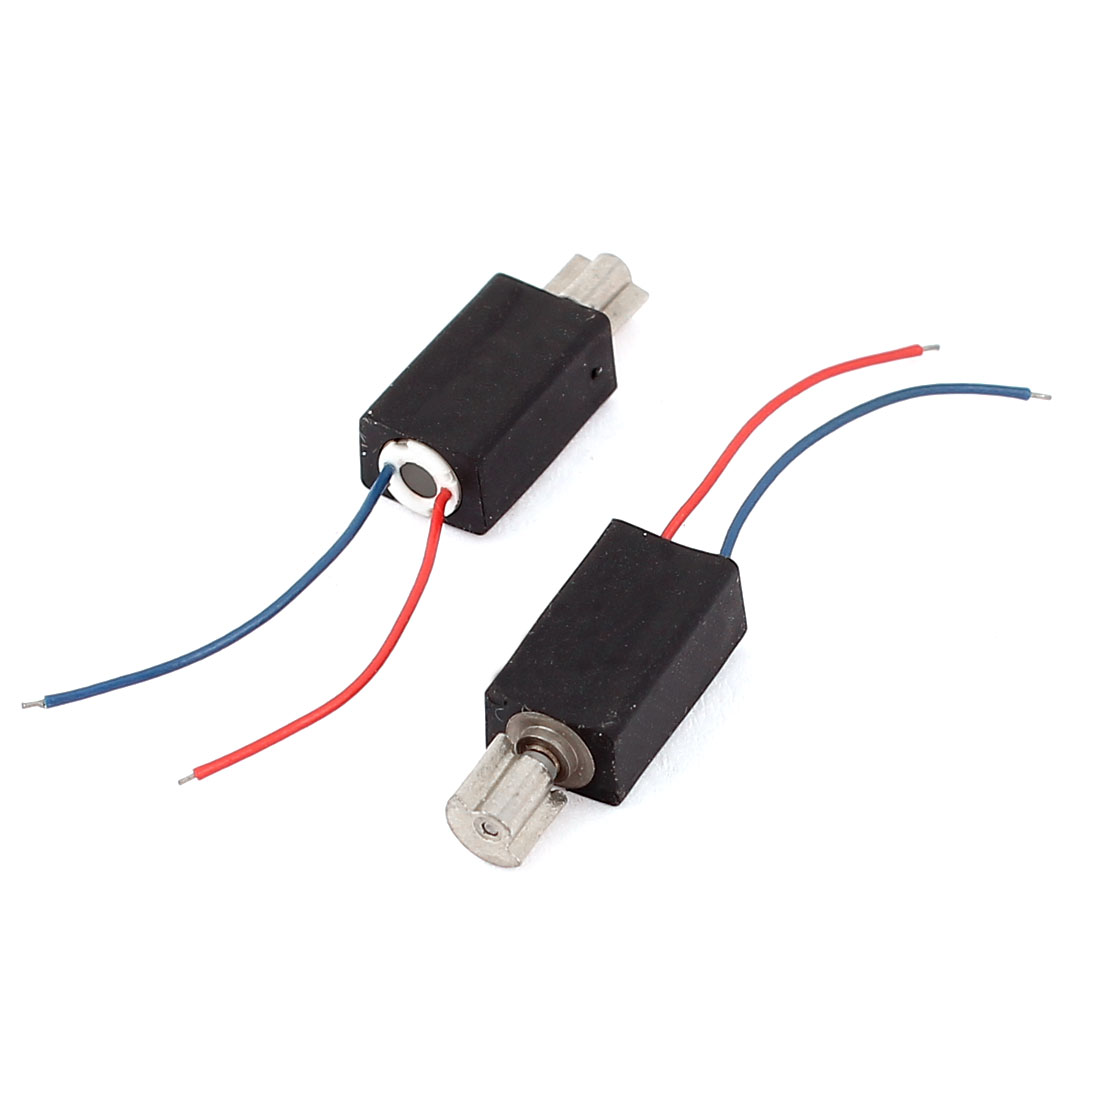 2 Pcs Electric Mini Micro Vibration Coreless Motor 8000RPM DC 1.3-7V for Phone